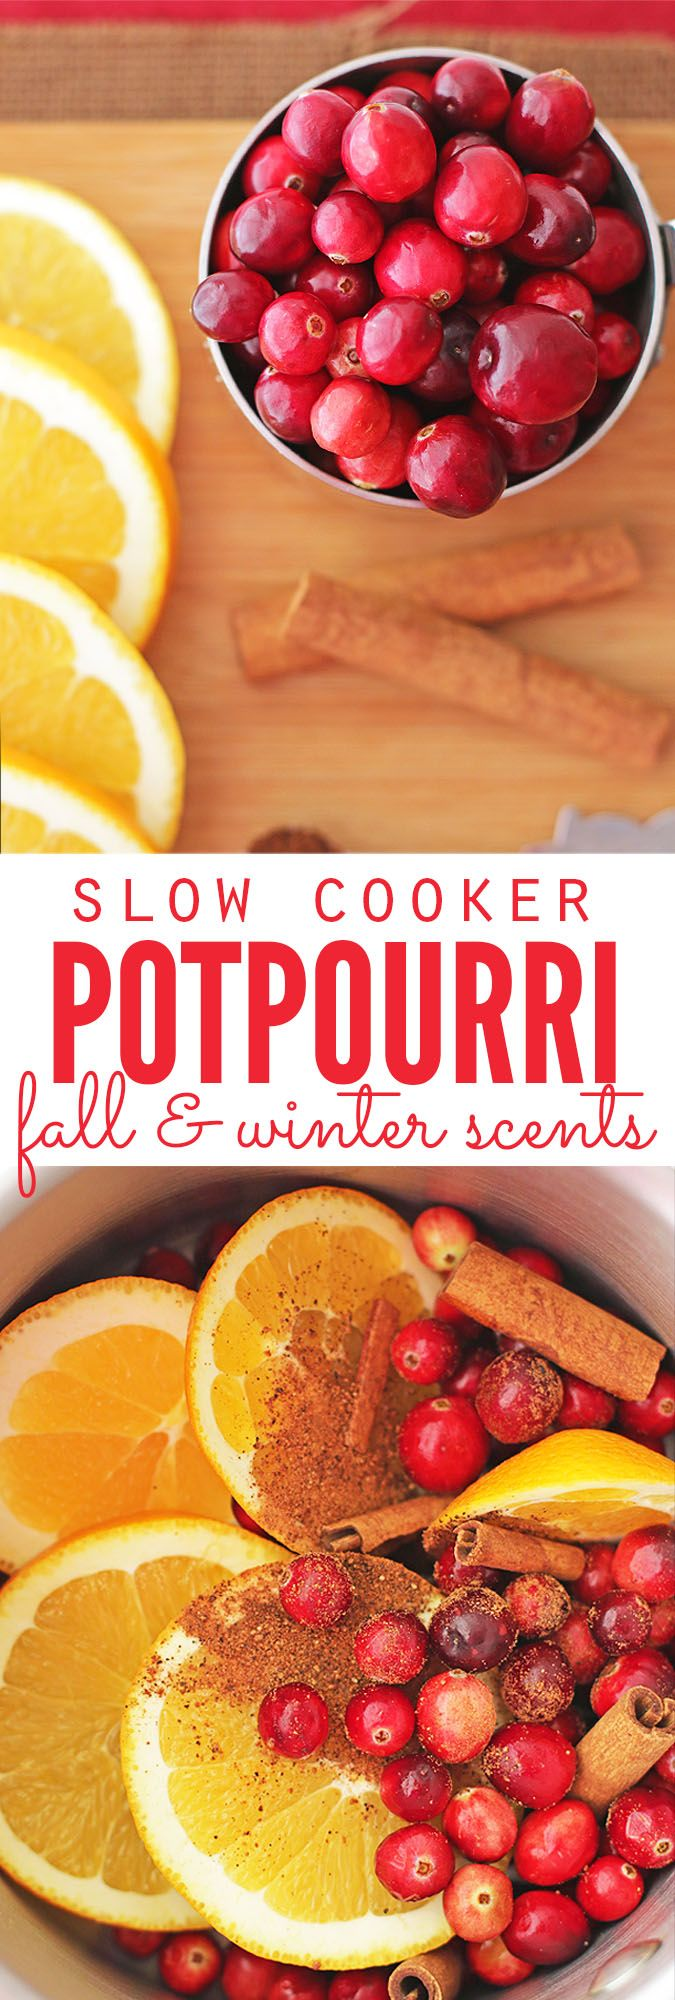 I love this easy recipe for slow cooker potpourri - it smells just like Christmas! I can leave it out all day long and don't have to worry about burning down the house, OR it can be adapted for stove top potpourri too. Plus there's ideas to turning homemade potpourri into an easy homemade Christmas gift! :: DontWastetheCrumbs.com